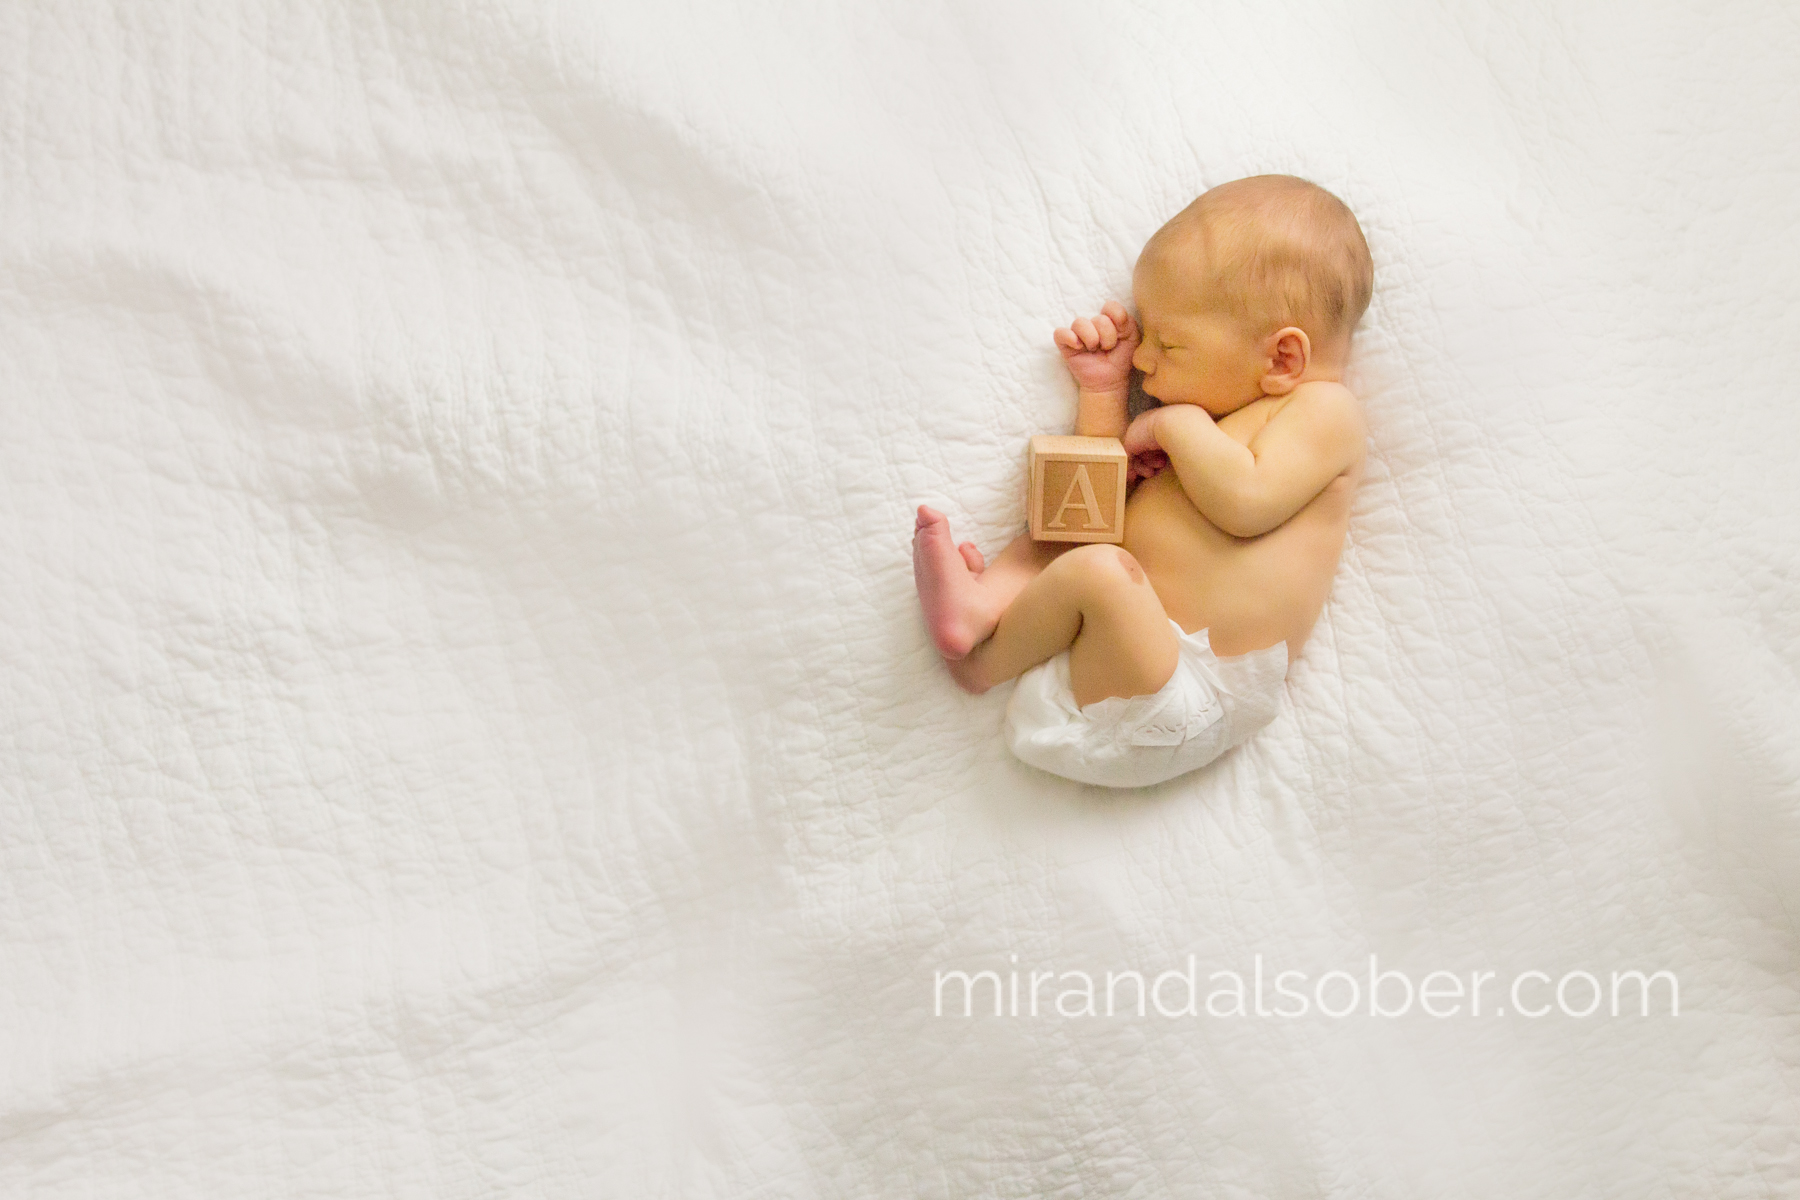 denver newborn photos, Miranda L. Sober Photography, Fort Collins